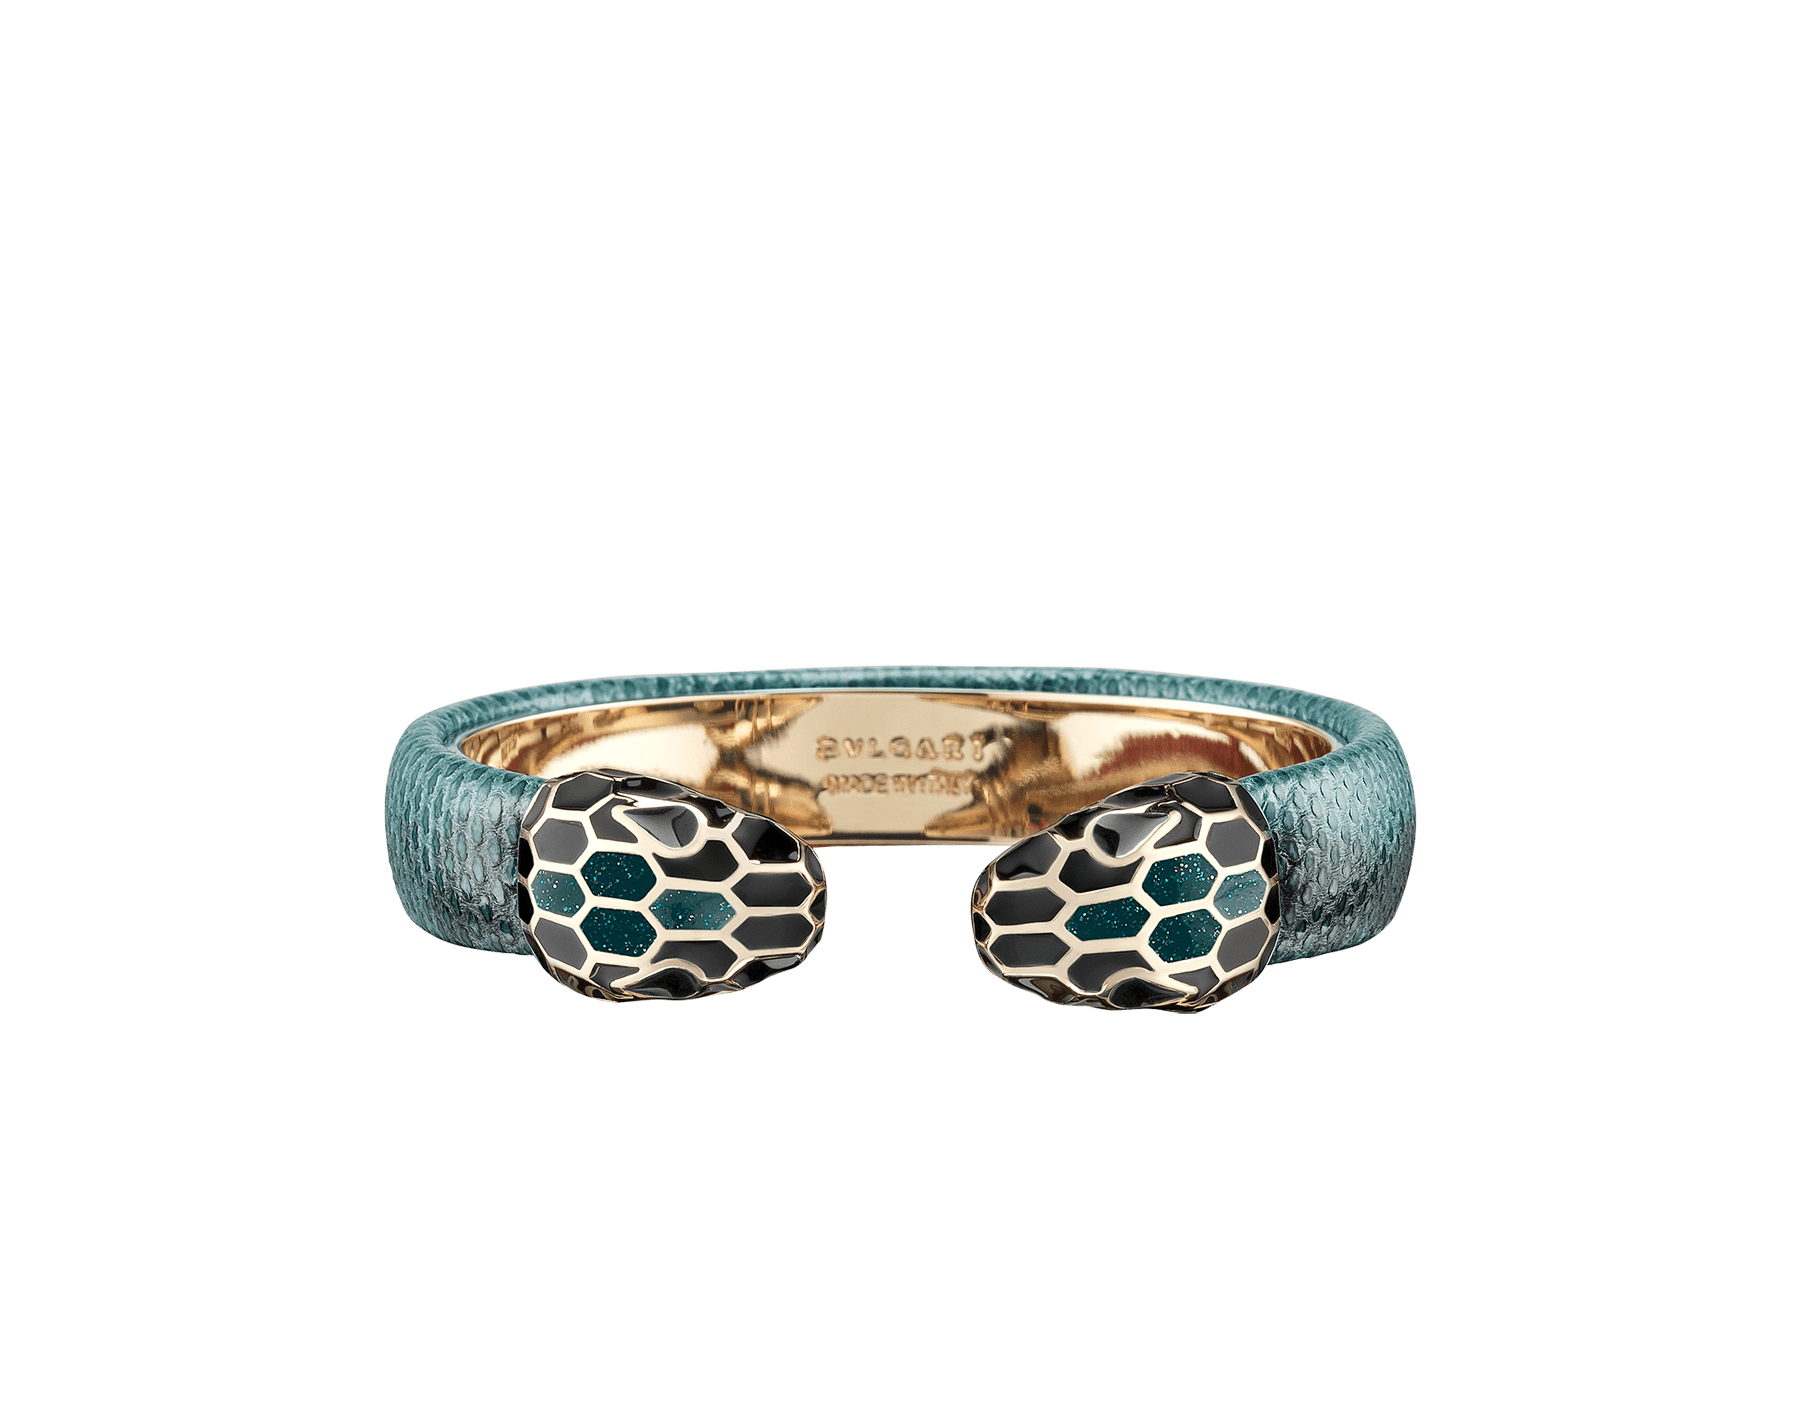 Serpenti Forever bangle bracelet in deep jade metallic karung skin, with brass light gold plated hardware. Iconic contraire snakehead décor in black and glitter deep jade enamel, with black enamel eyes. SPContr-MK-DJ image 1